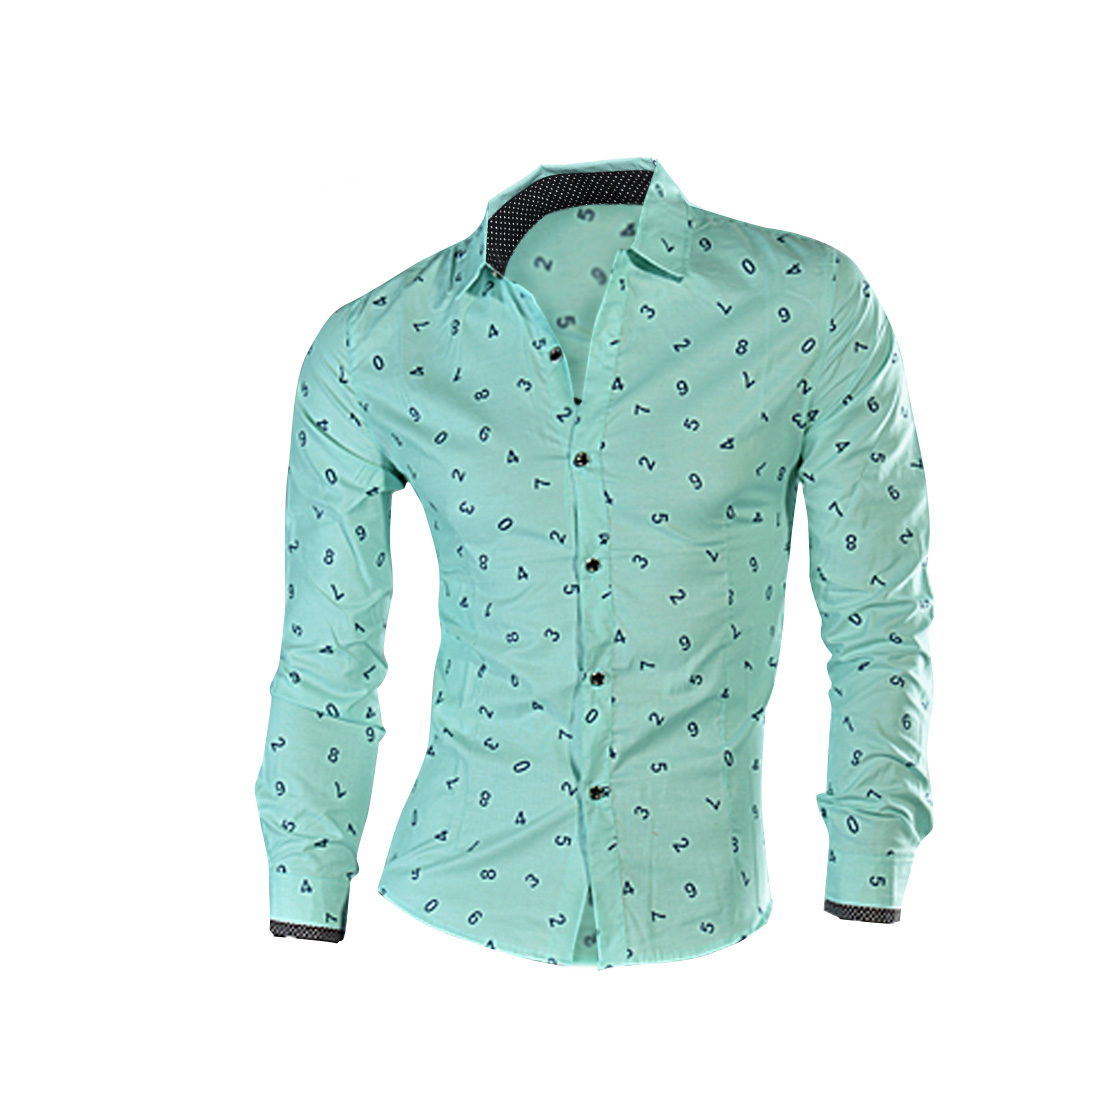 Men Point Collar Long Sleeve Digit Pattern Light Green Button Down Shirt S